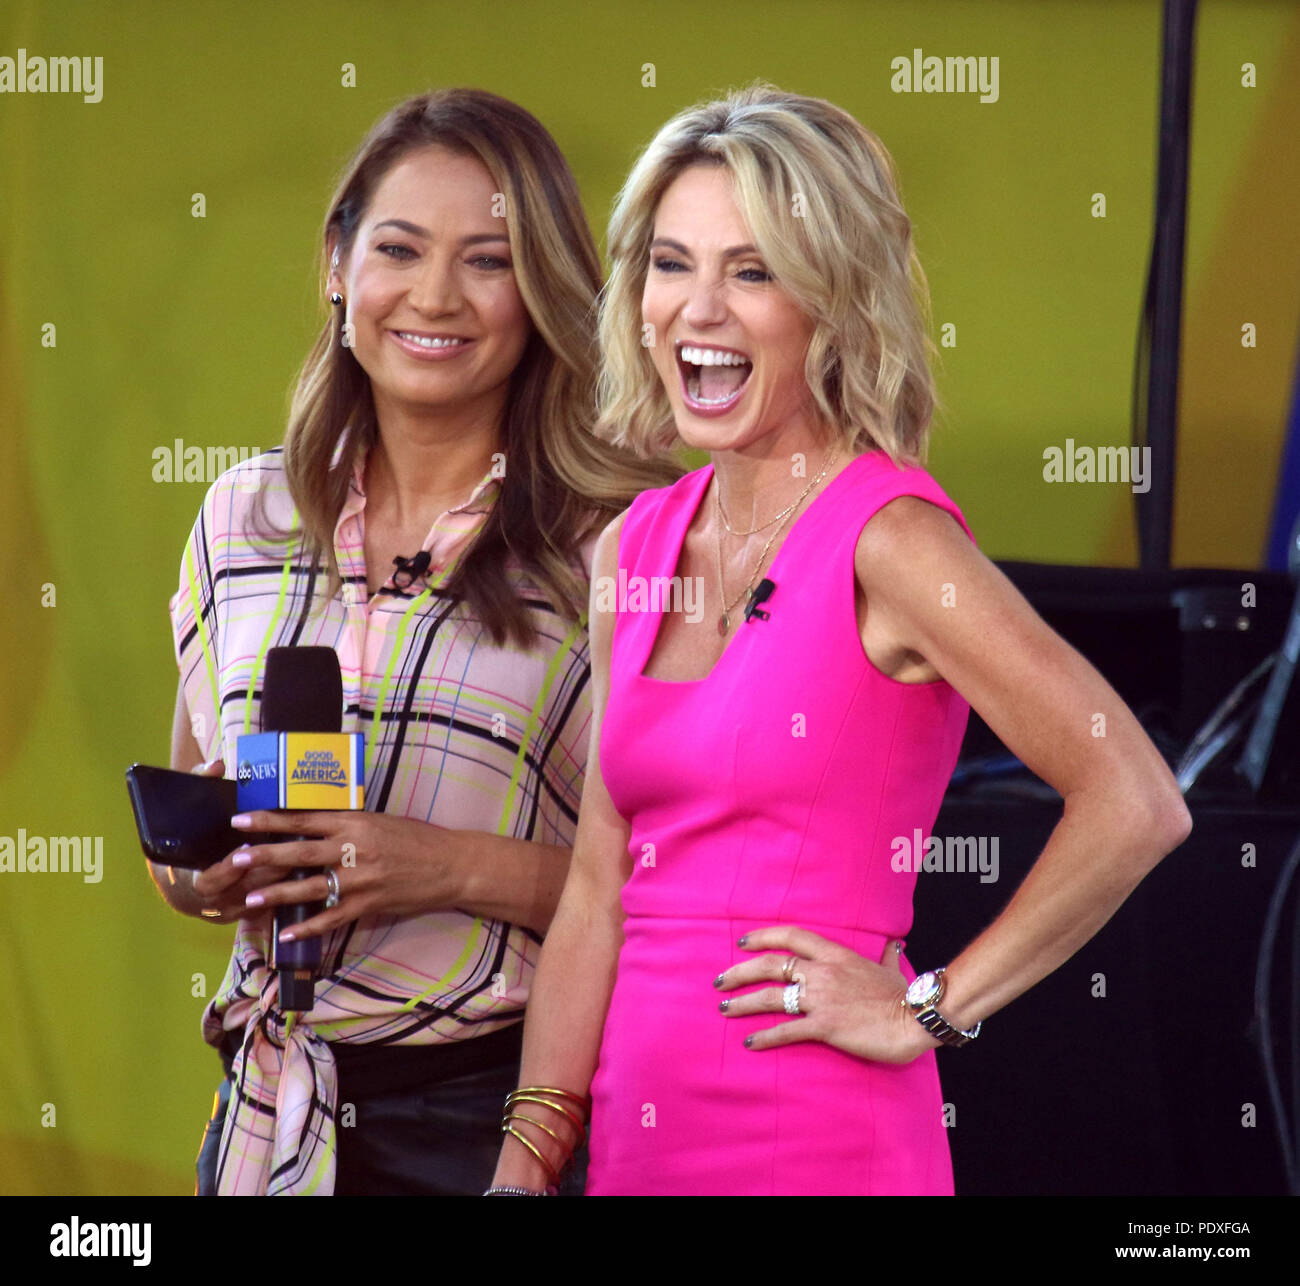 New York City, New York, USA. 10th Aug, 2018. 'GMA' hosts GINGER ZEE and AMY ROBACH from 'The Chainsmokers' performs on 'Good Morning America' held in Central Park. Credit: Nancy Kaszerman/ZUMA Wire/Alamy Live News Stock Photo